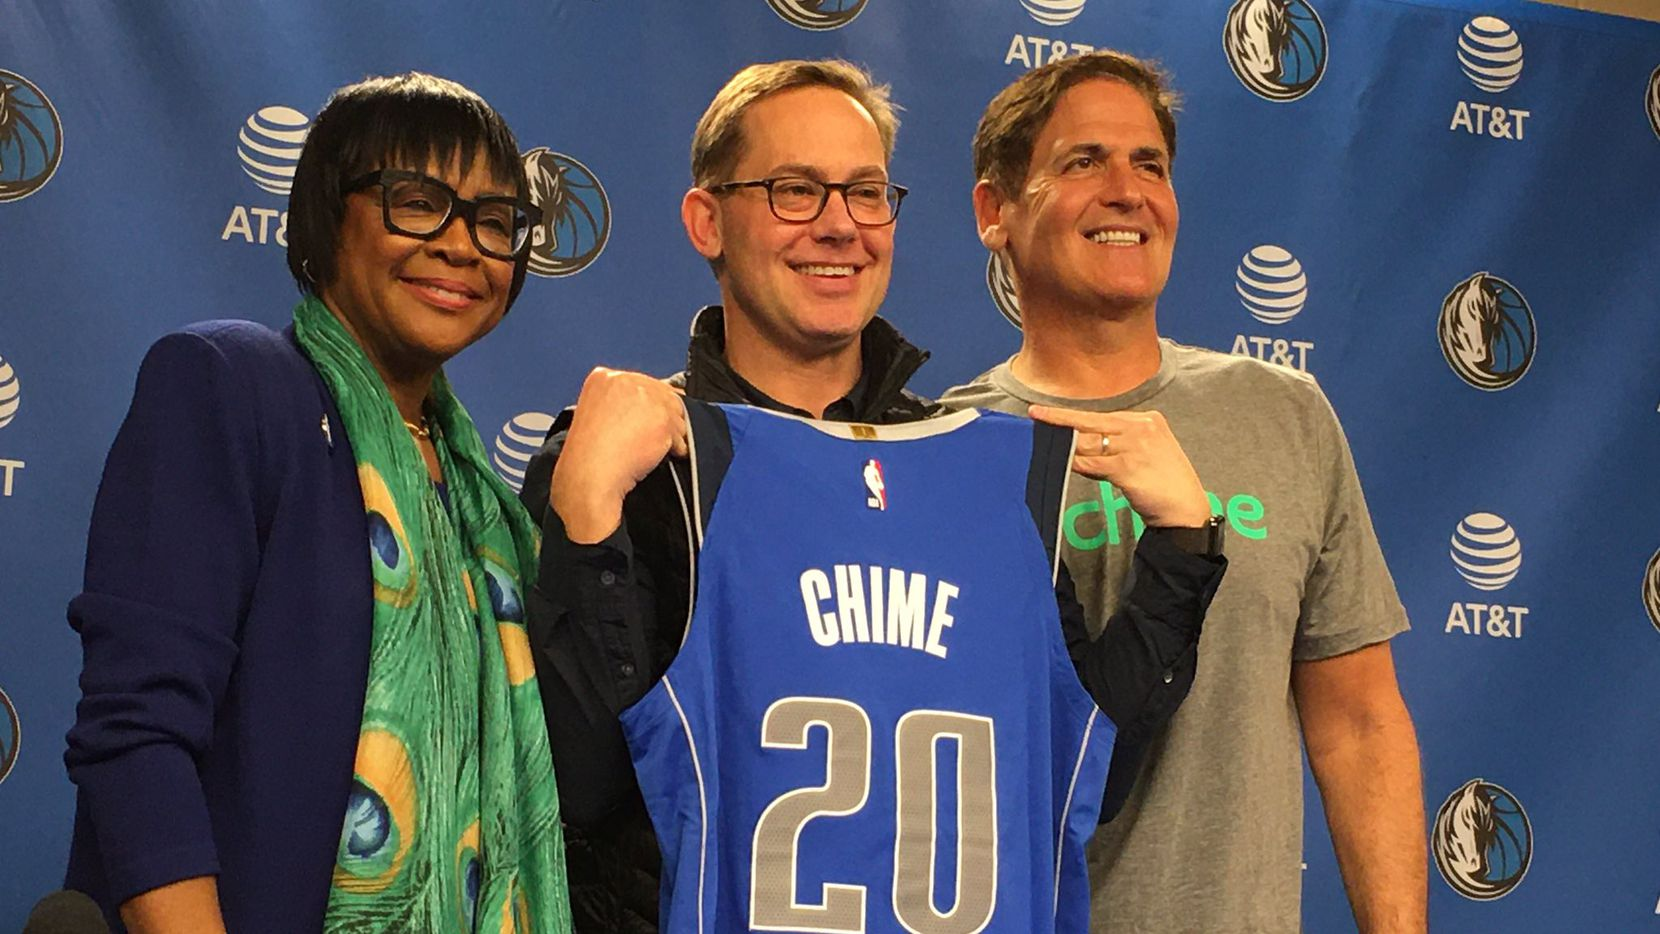 Mavericks CEO Cynthia Marshall (left), Chime CEO and founder co-founder Chris Britt (center) and Mark Cuban (right) pose for a photo (January 17, 2019).